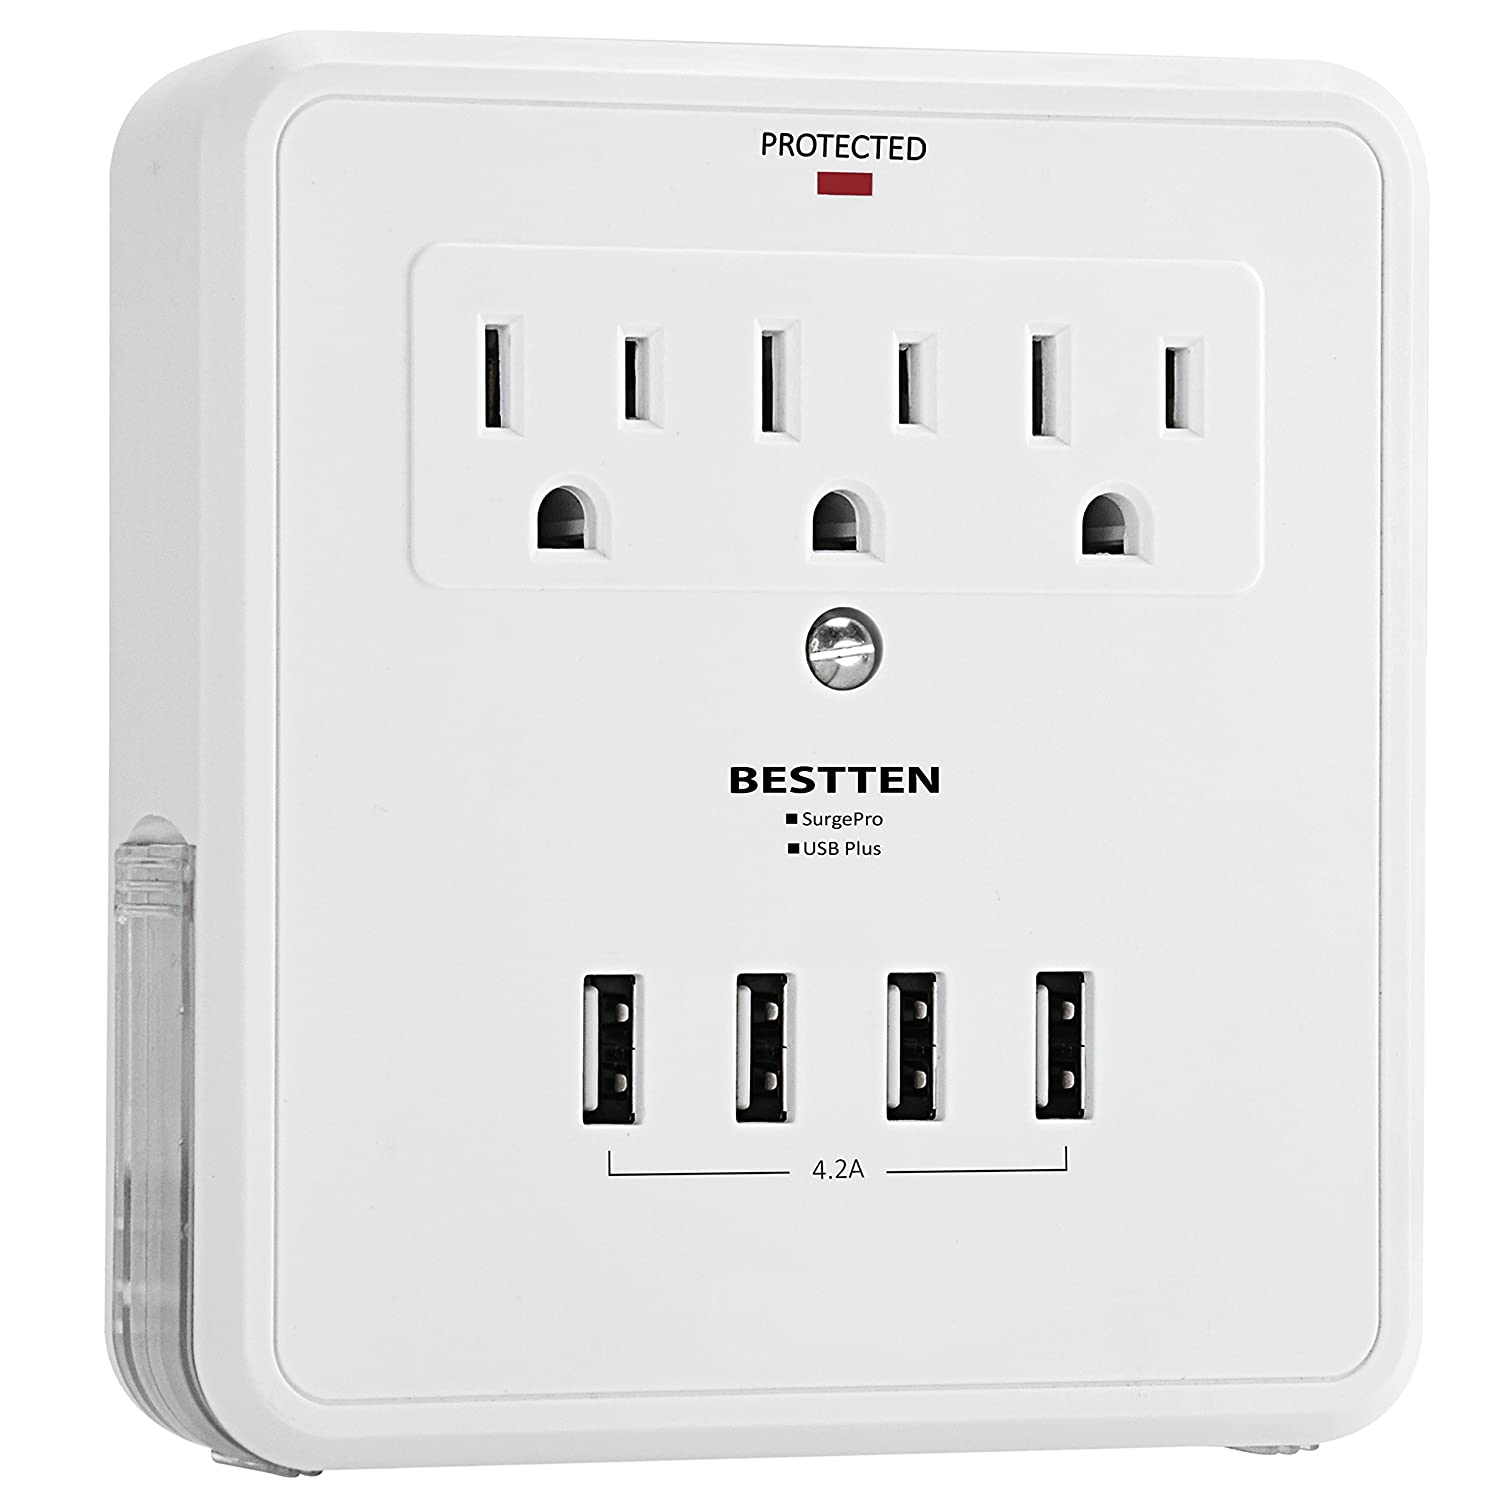 ETL Certified White Plug Multiplier with 2 Slide-Out Phone Holders 4.2A Total and 3 AC Sockets 300 Joule Surge Protector BESTTEN Outlet Extender with 4 USB Charging Ports USB Cable Included